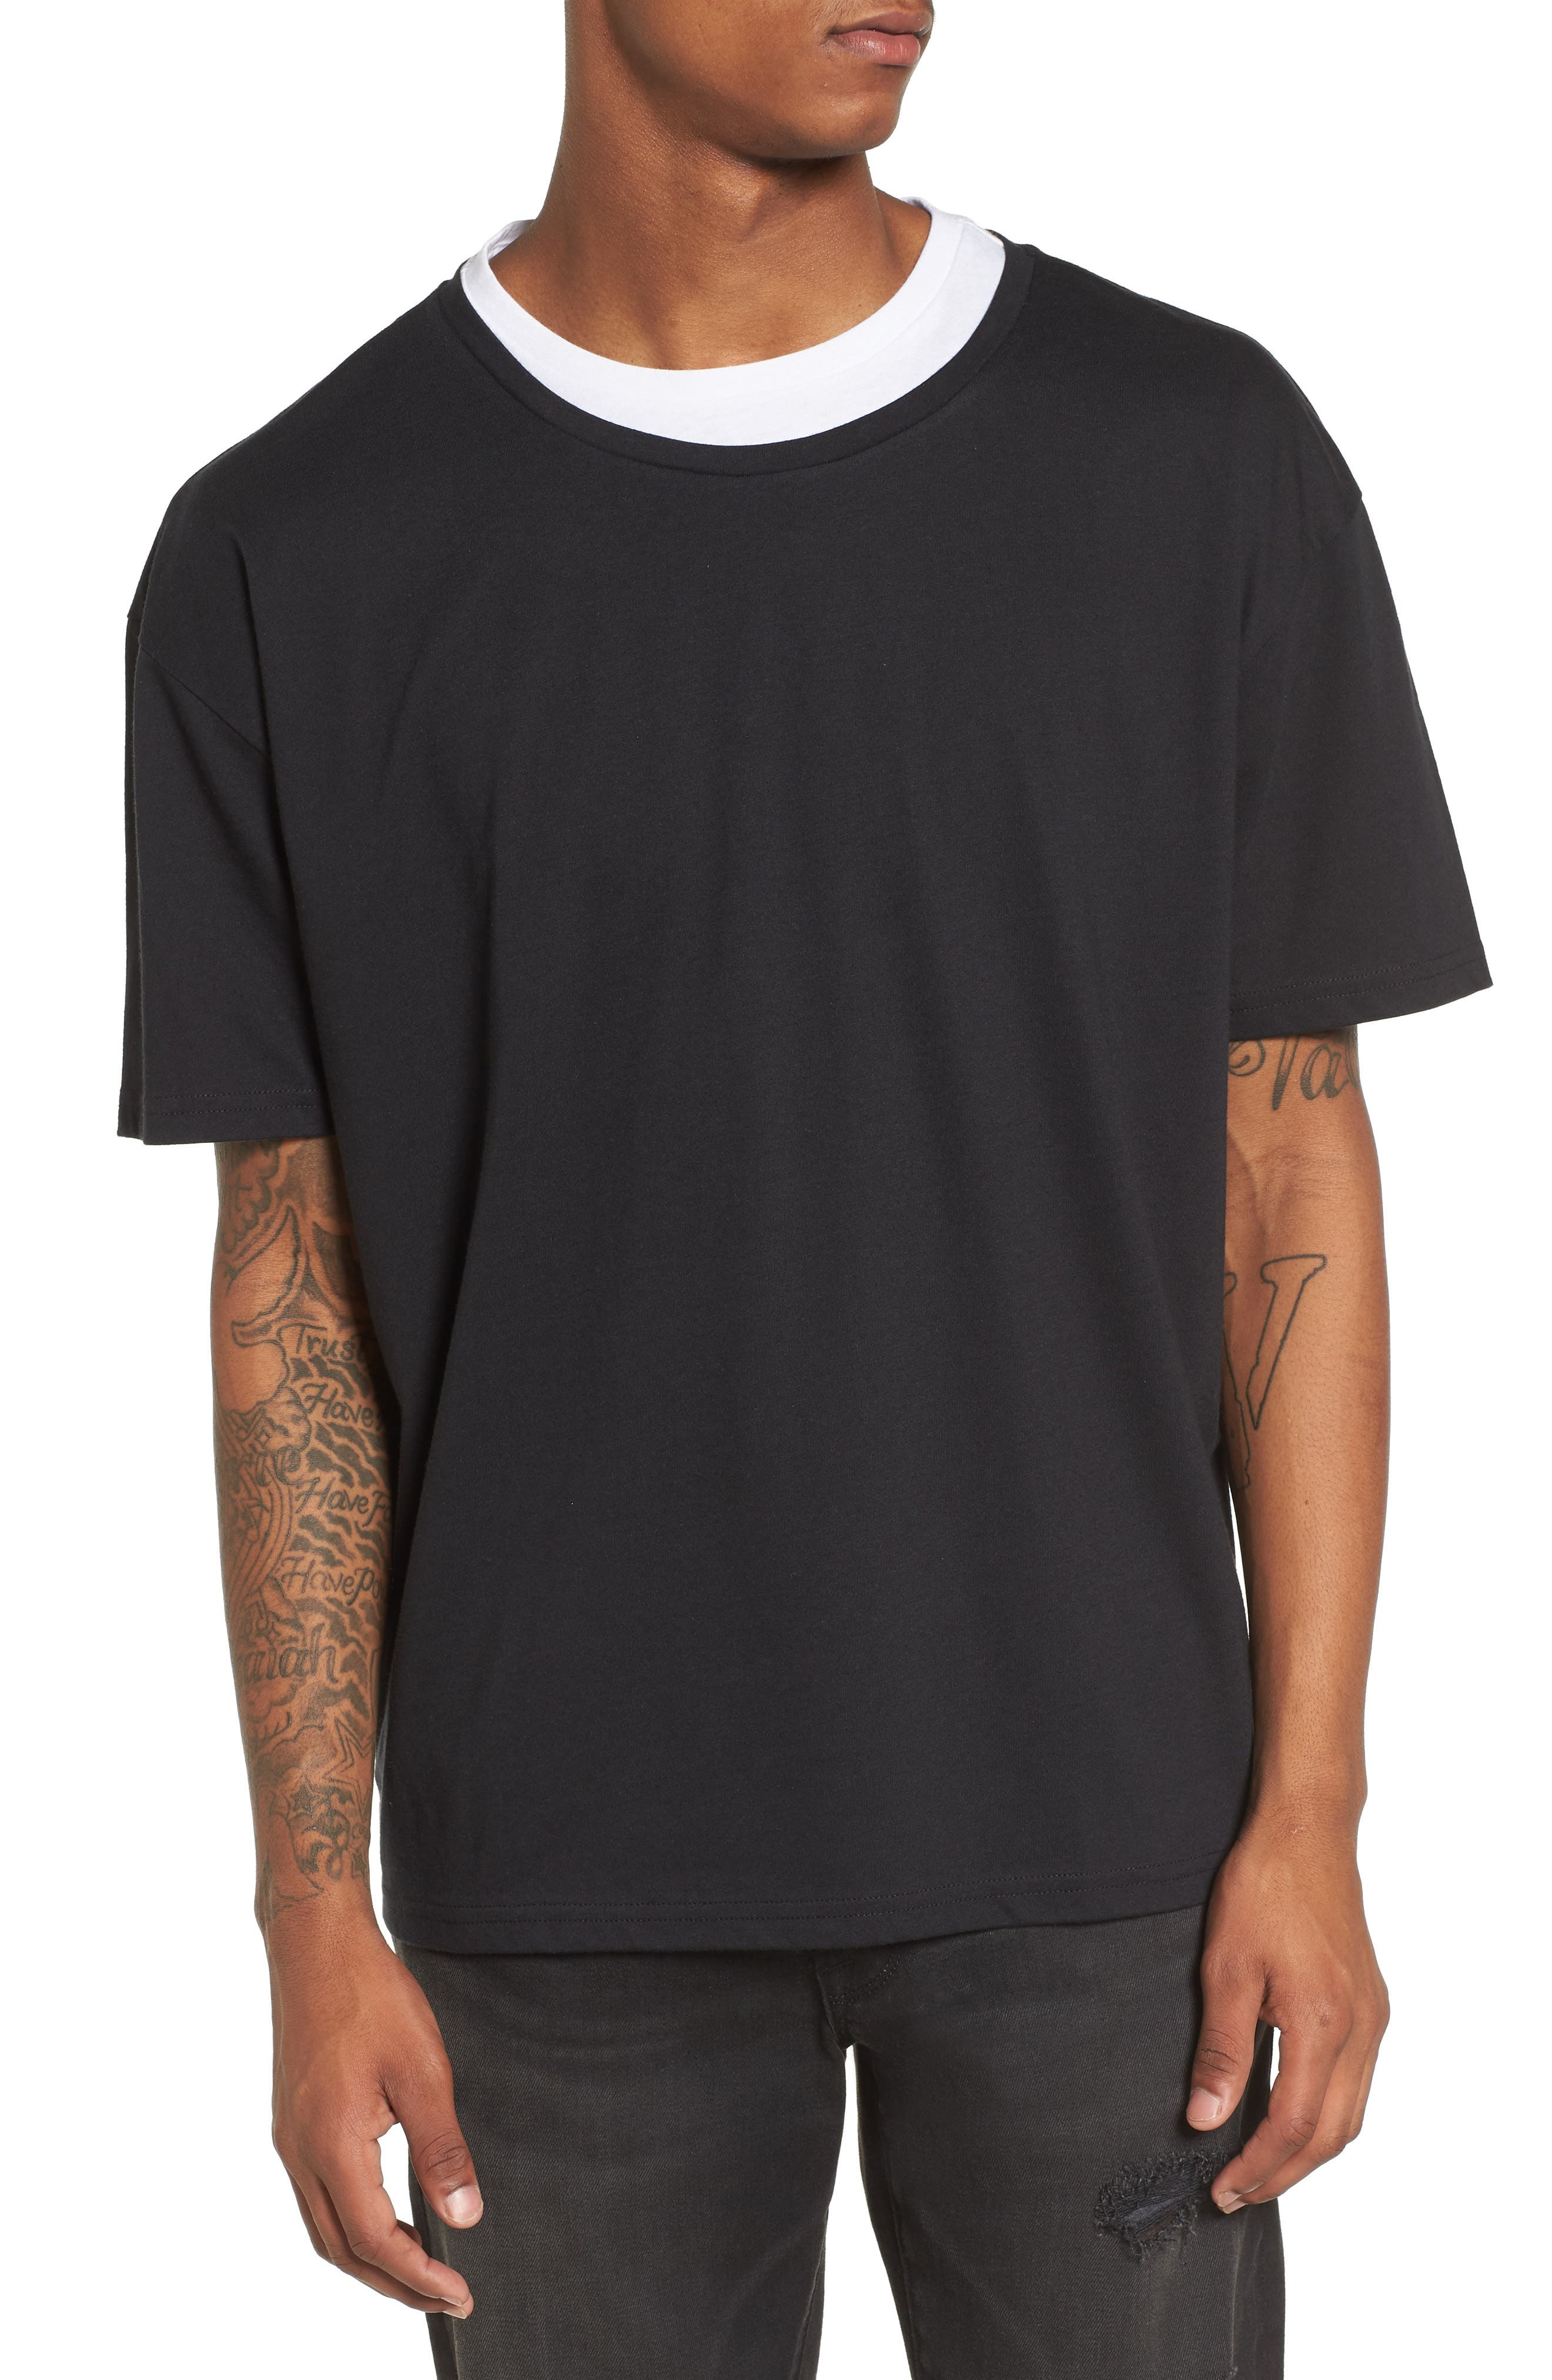 The Rail Double Layer T-Shirt